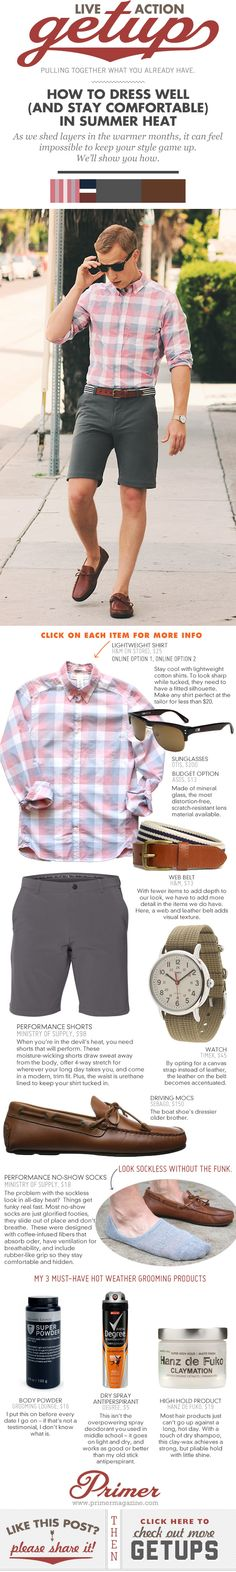 The Getup: How to Dress Well (and Stay Comfortable) in Summer Heat - Primer